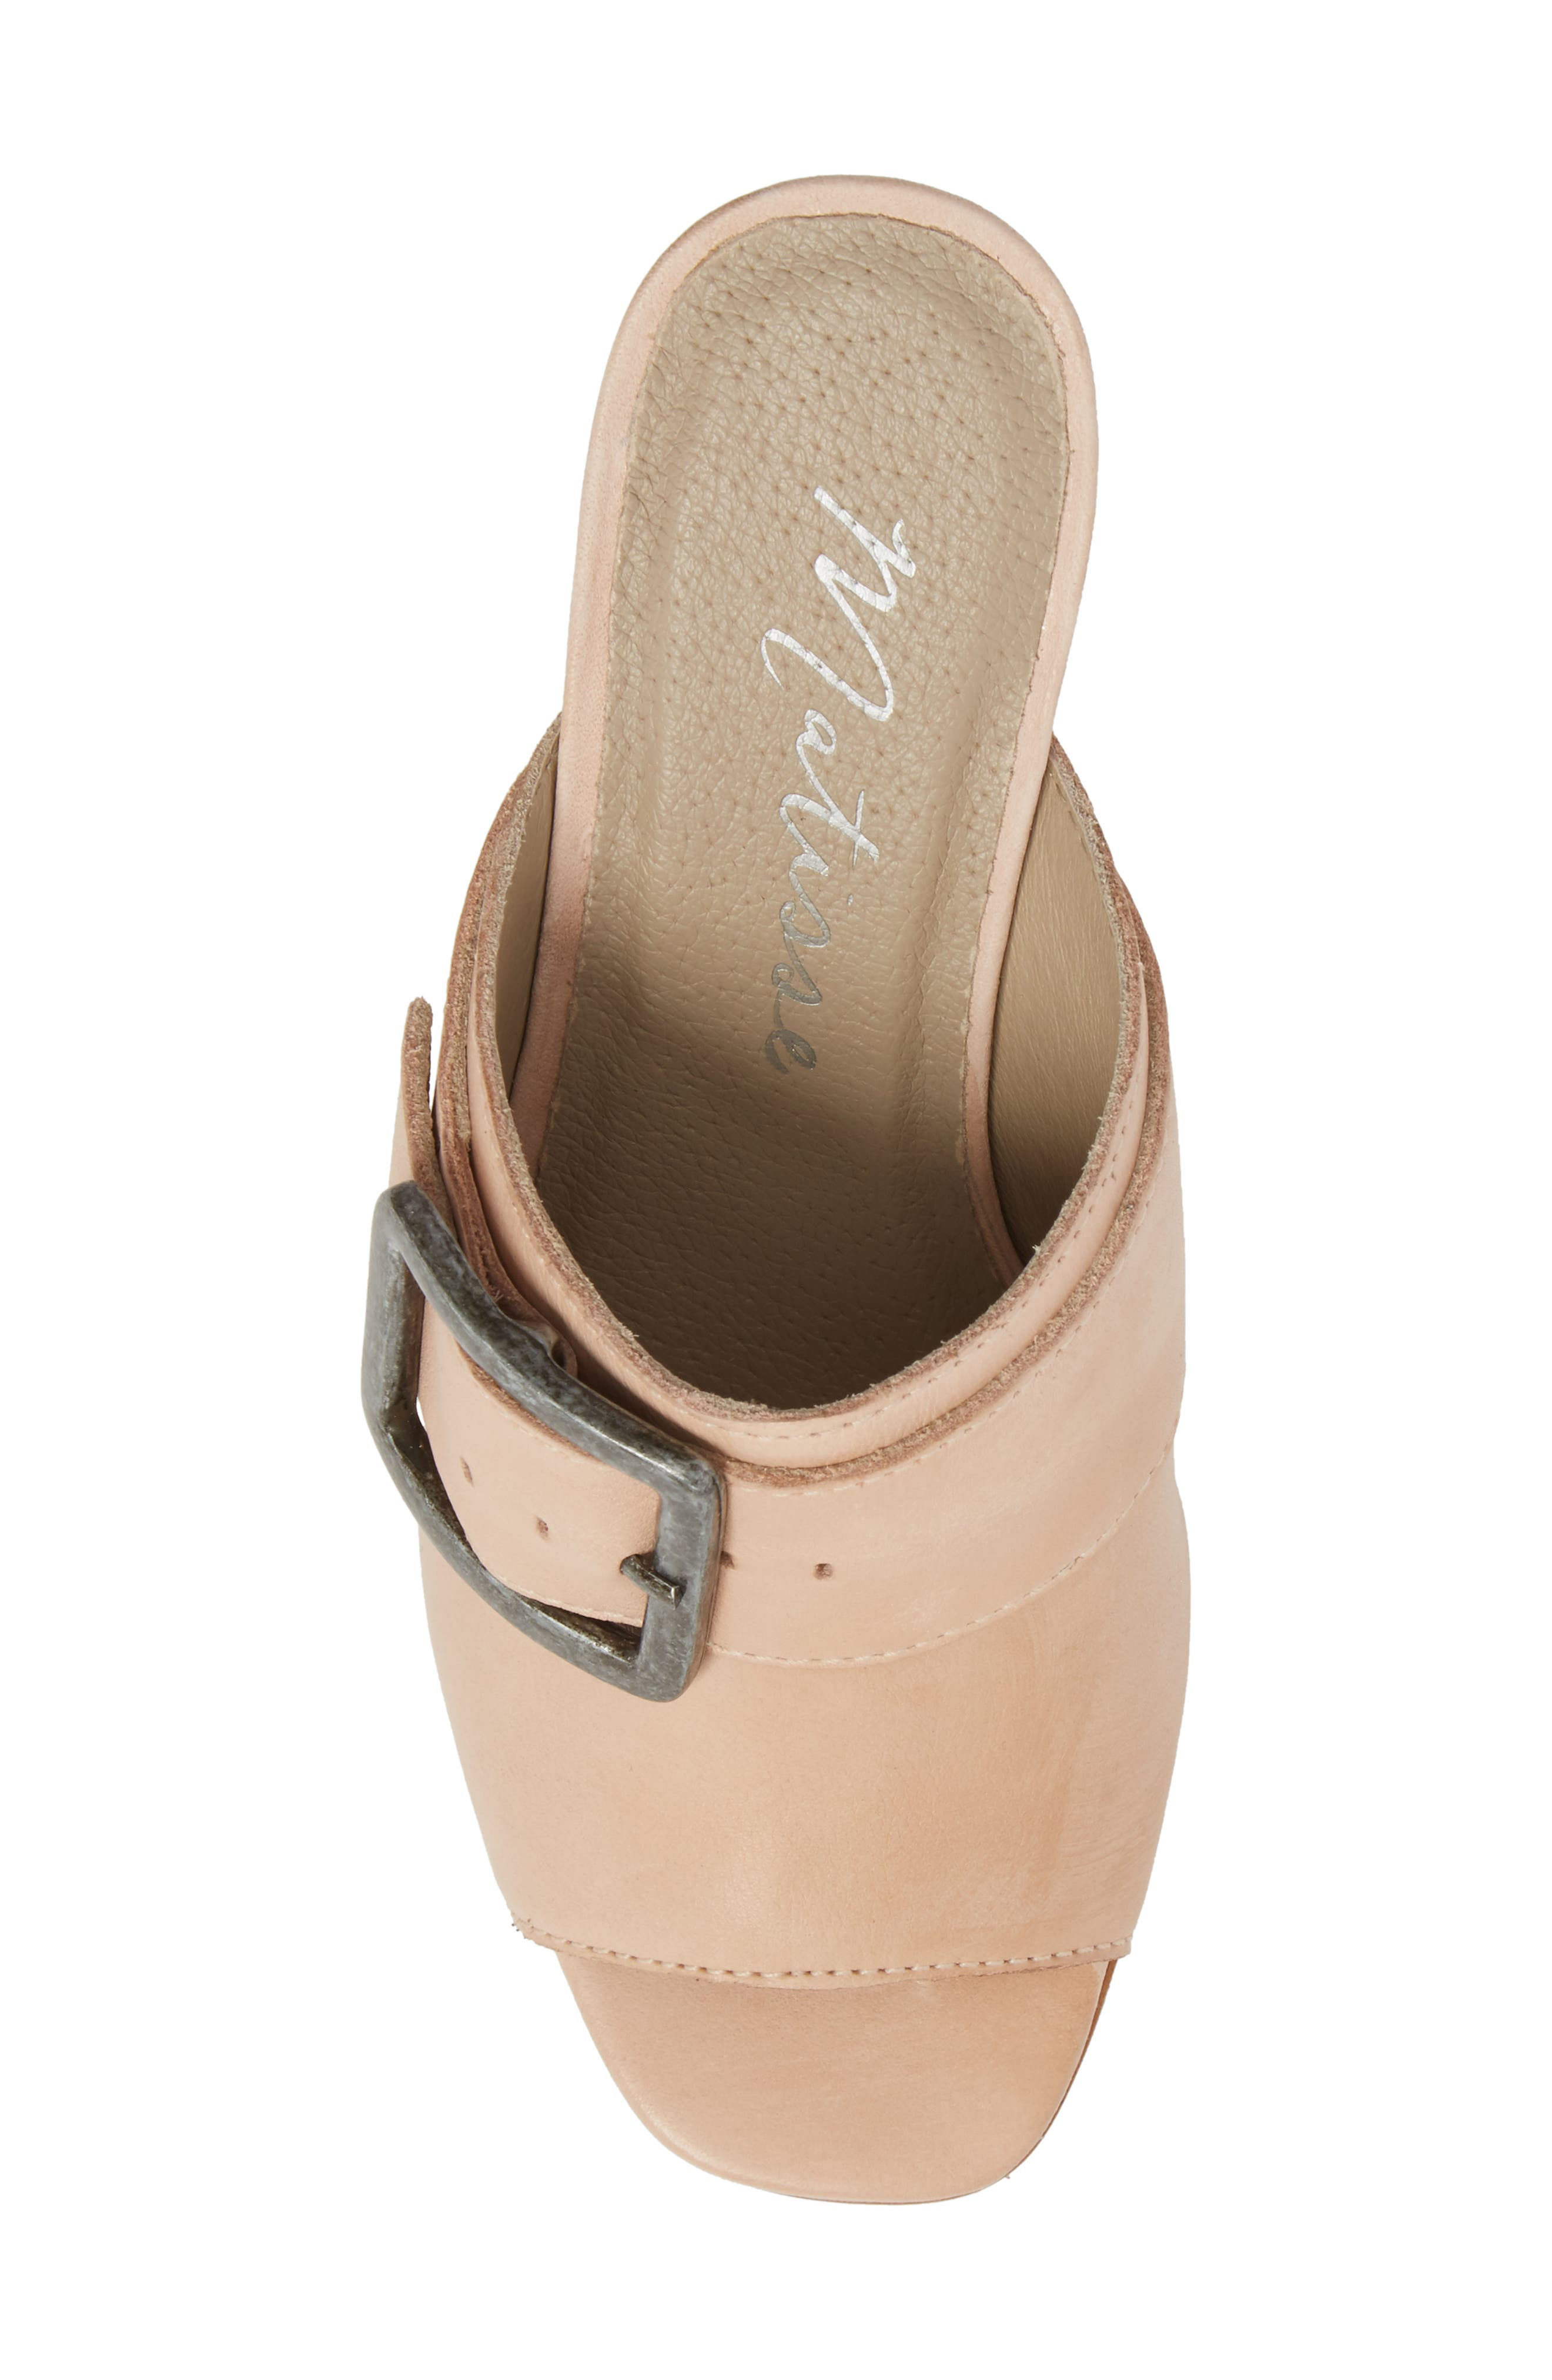 Beatrice Sandal,                             Alternate thumbnail 5, color,                             Nude Leather